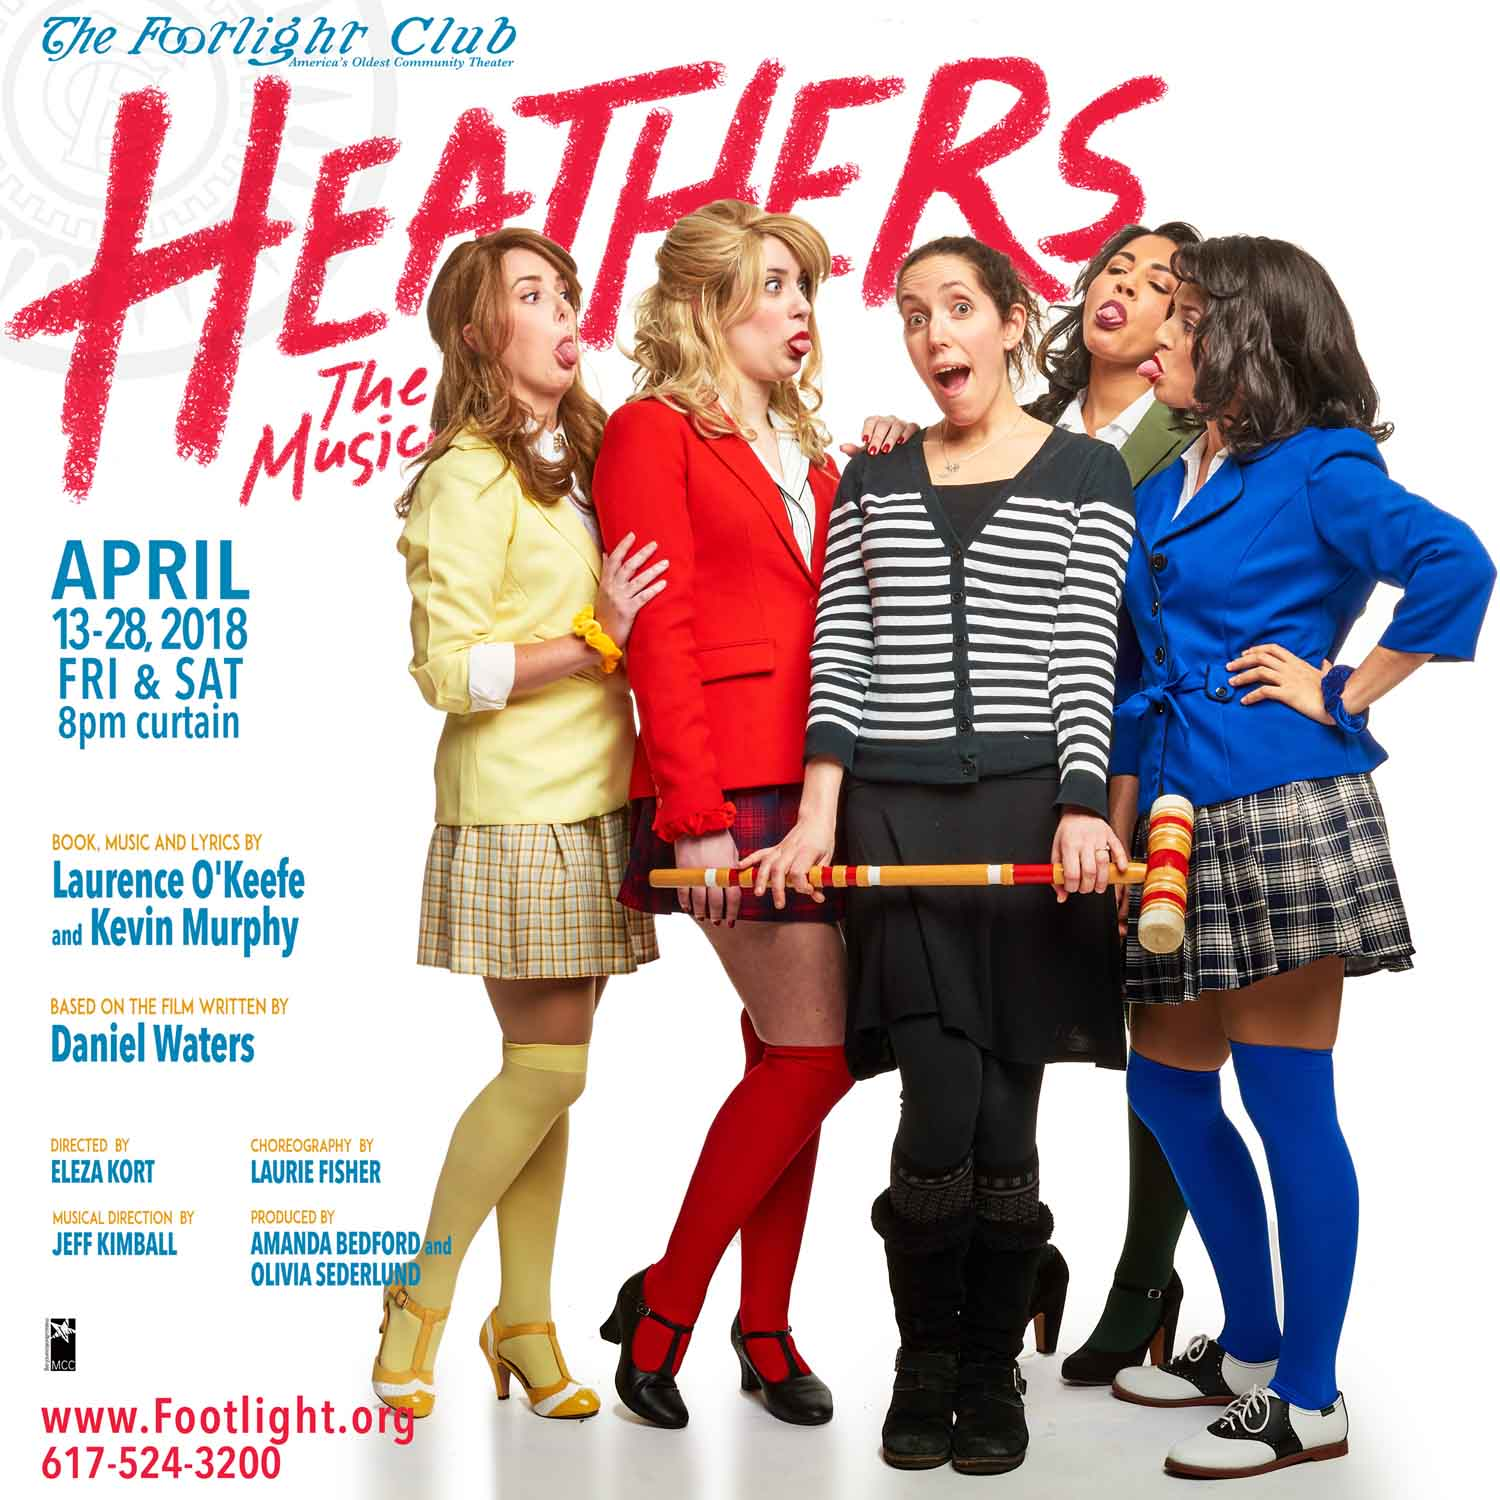 Heathers, The Musical cast with Director Eleza Kort